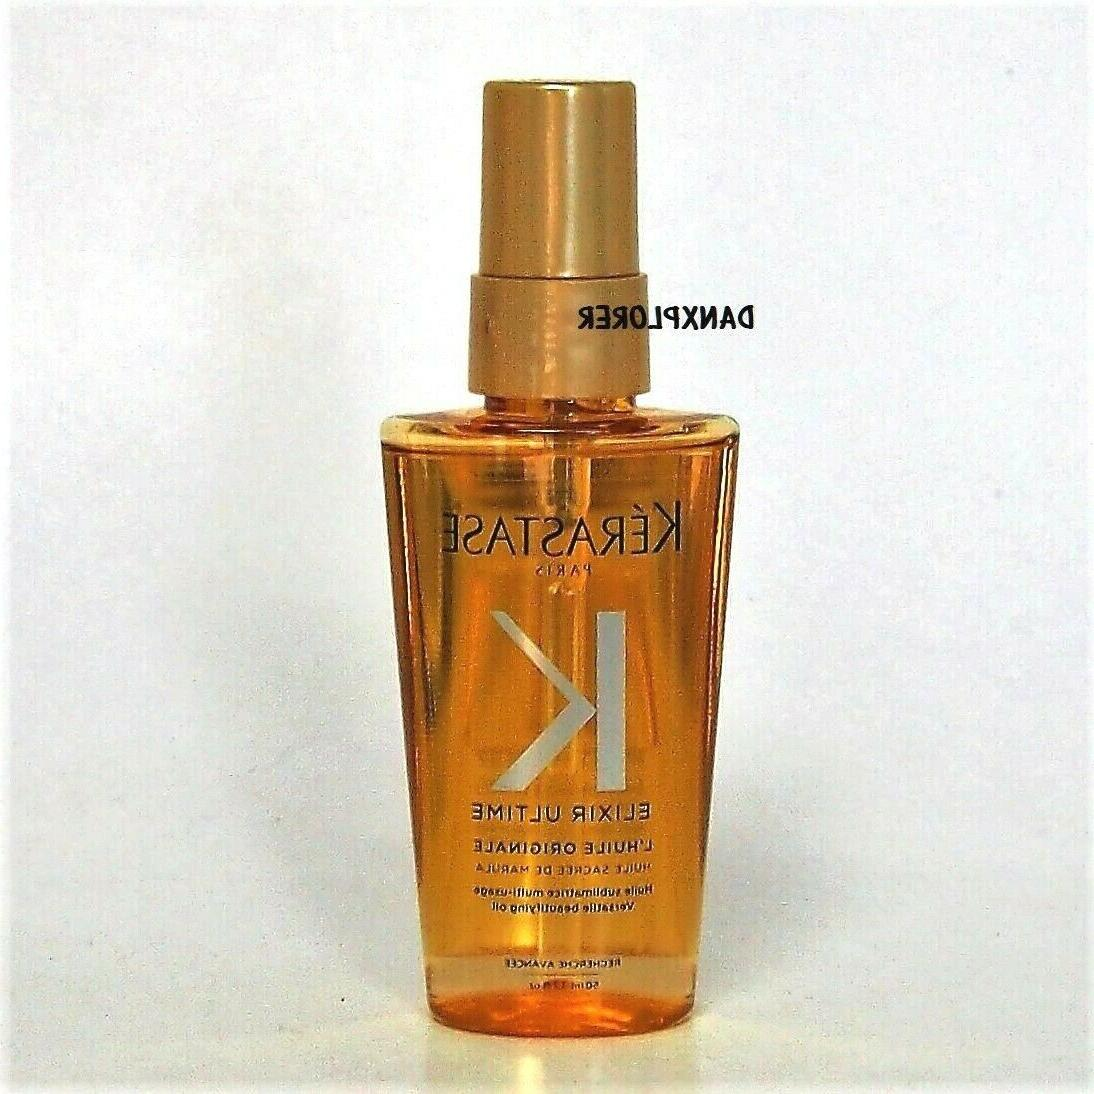 -TRAVEL KERASTASE ULTIME VERSATILE OIL 1.7oz 50ml